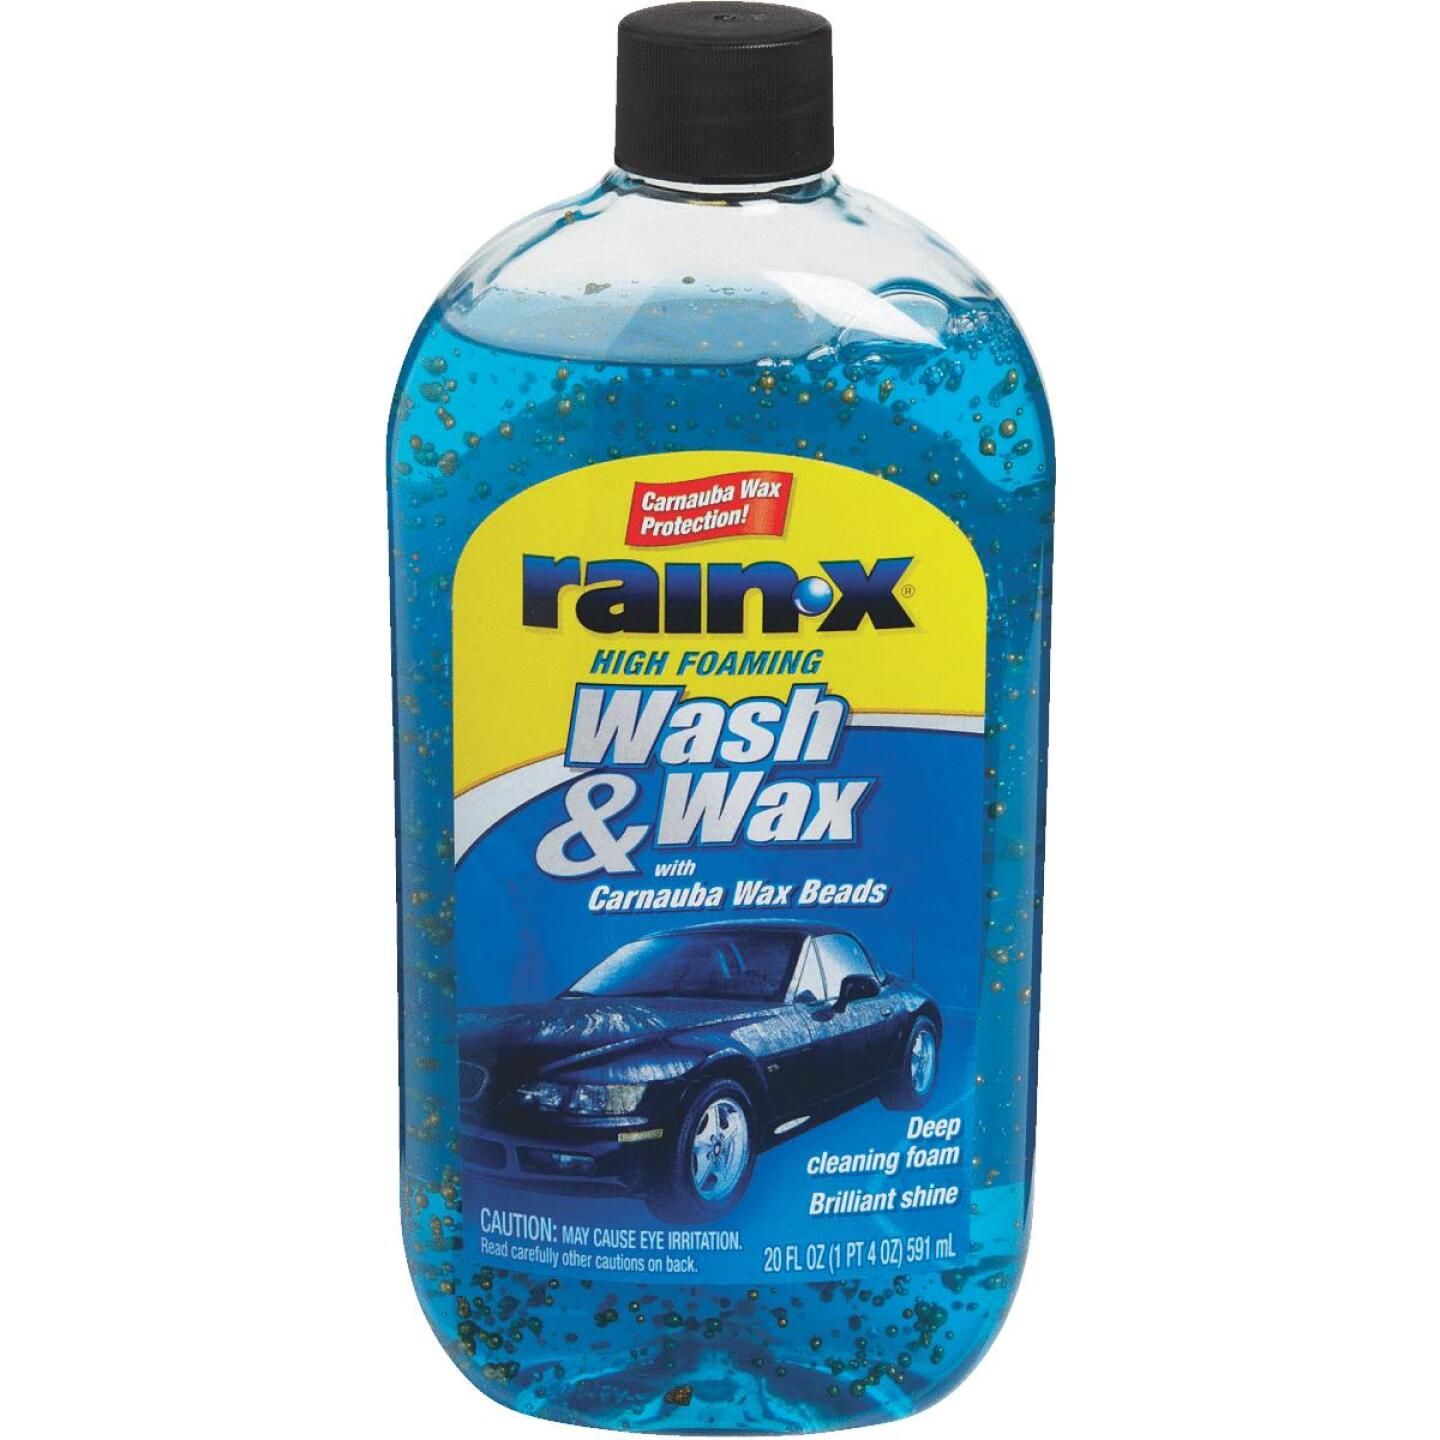 RAIN-X 20 Oz. Liquid High Foaming Car Wash & Wax w/Carnauba Wax Image 1